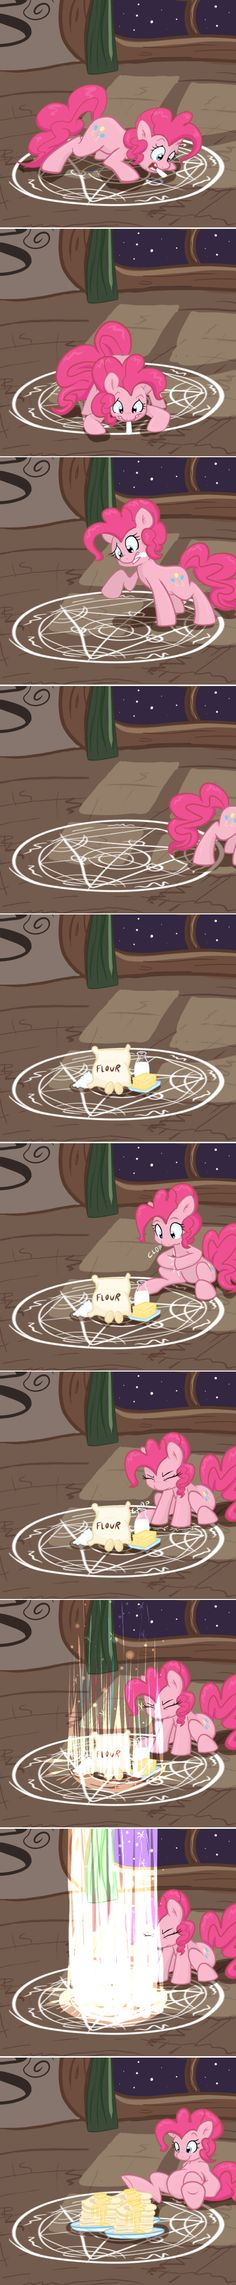 Bruh i thought she was makin a demon trap, not using alchemy, full metal alchemiy's pinkie pie :)